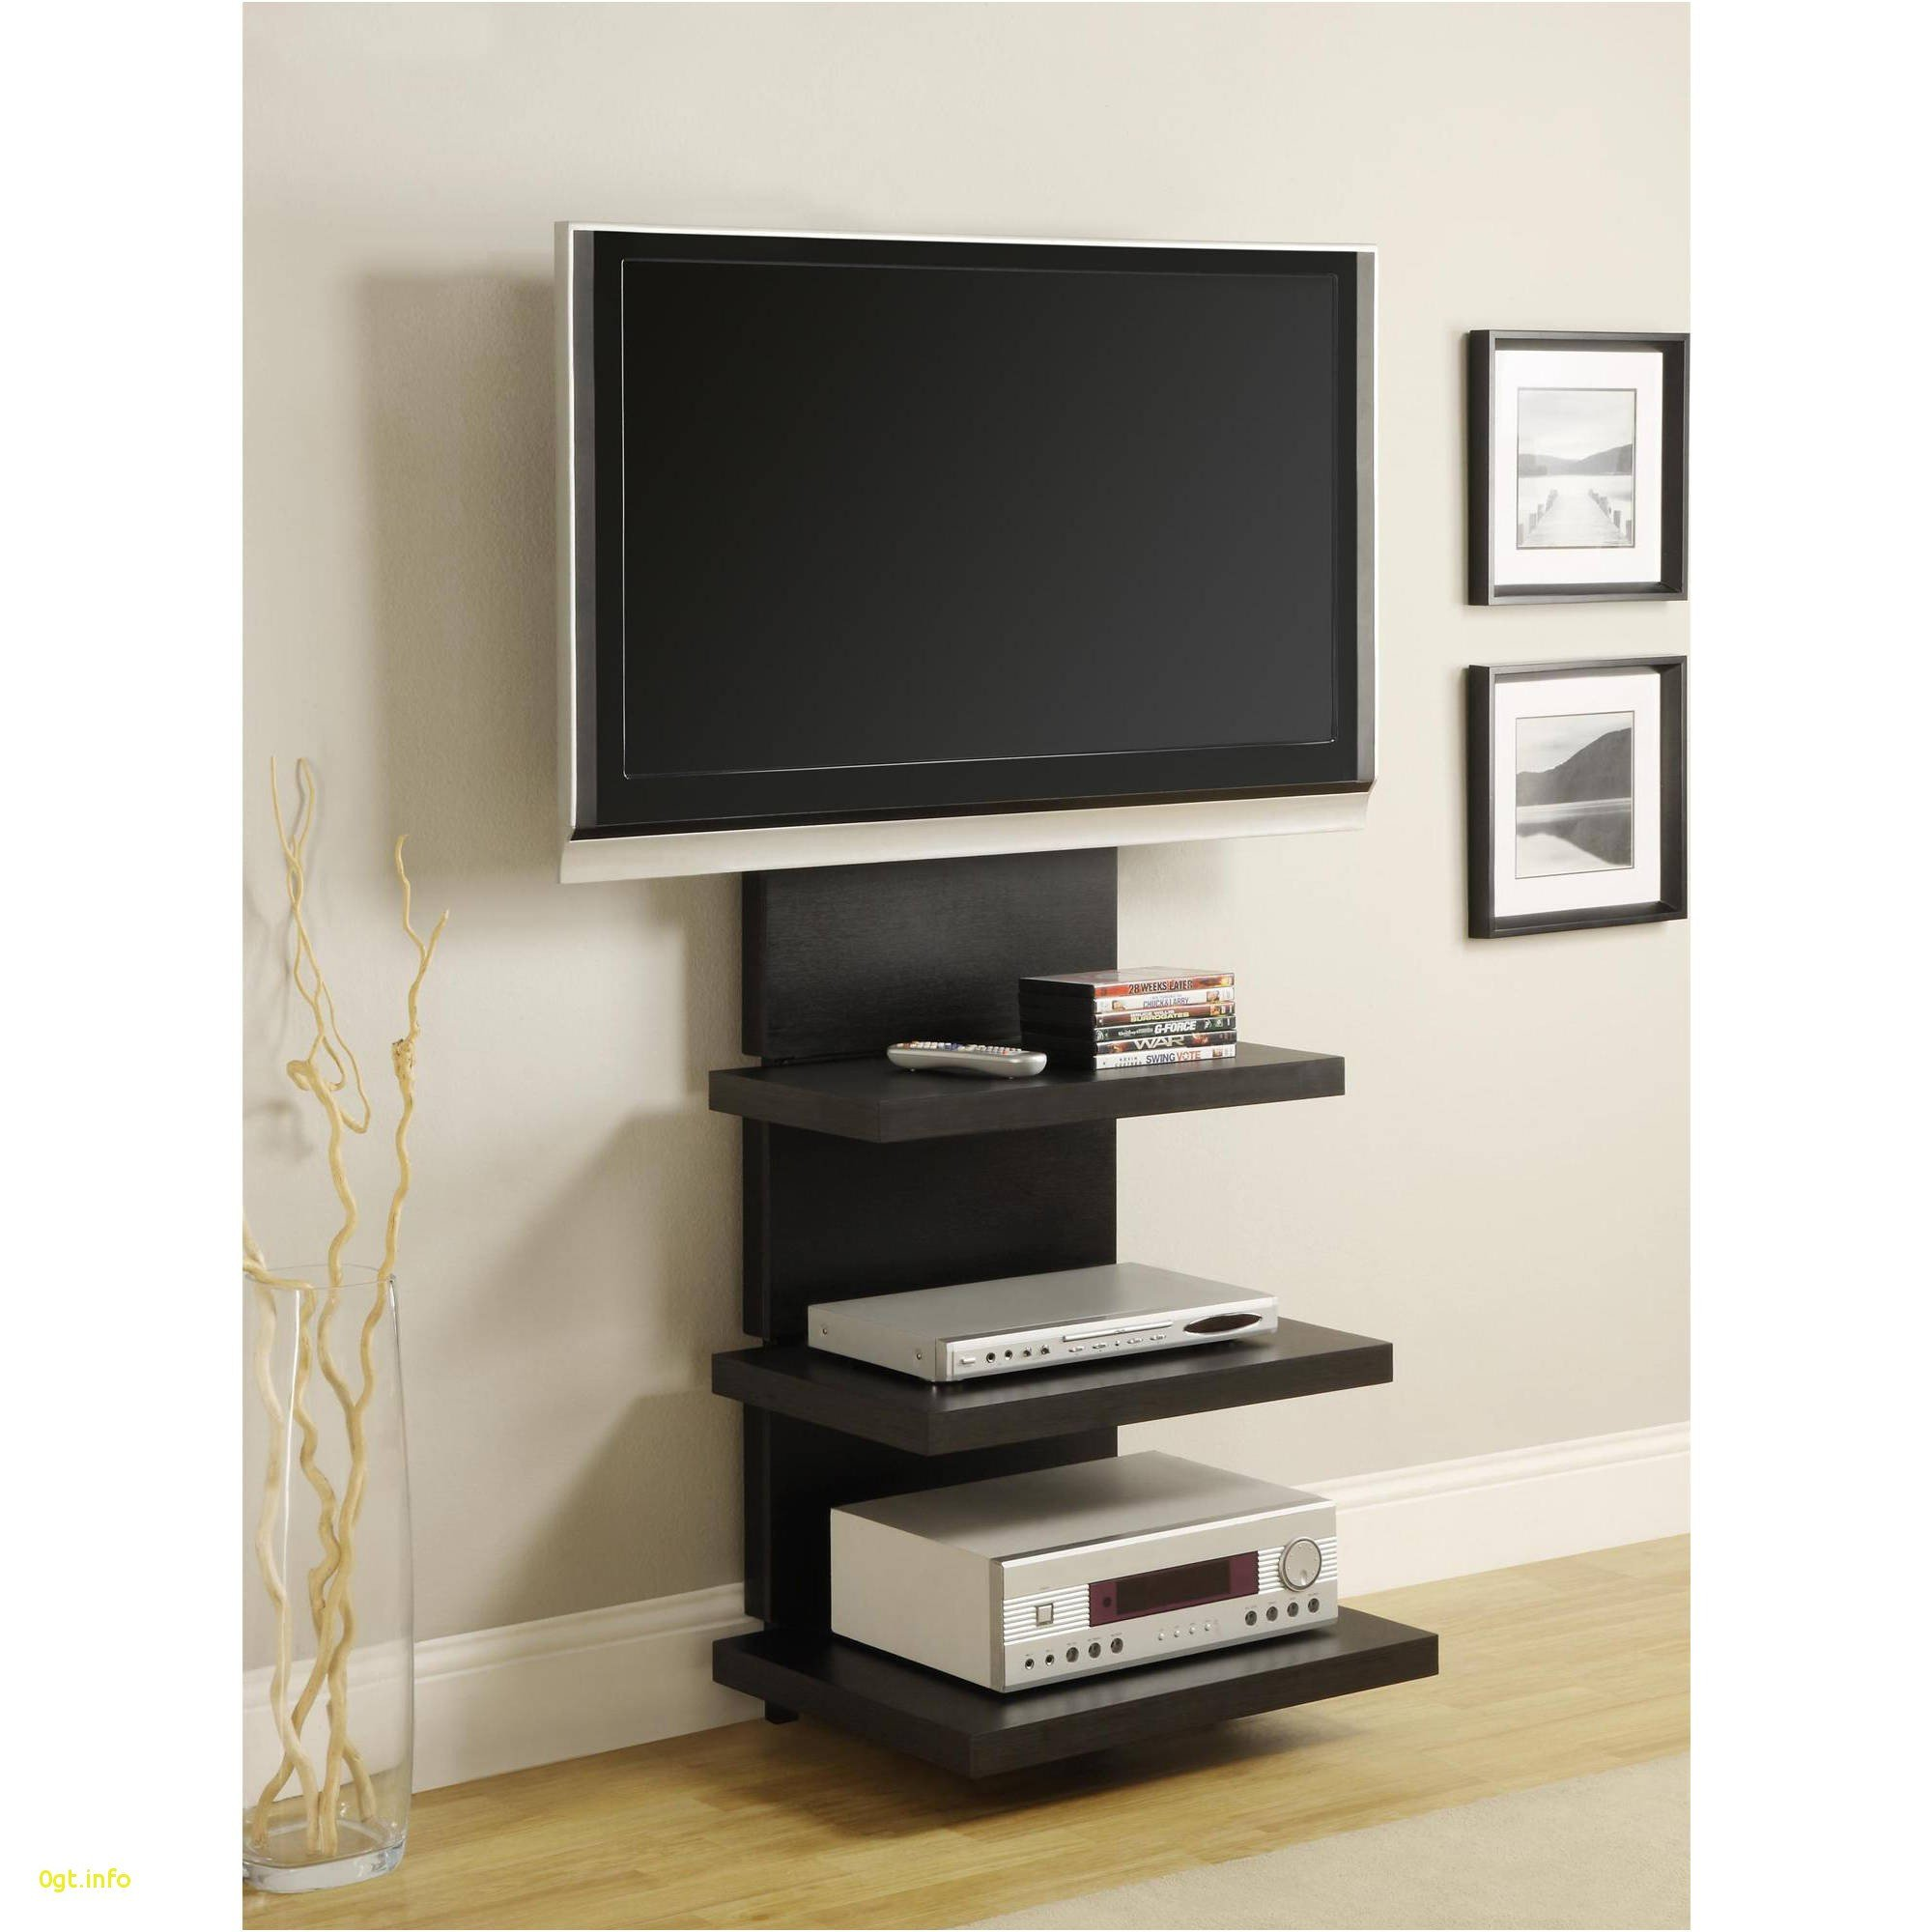 Tall Tv Stand for Bedroom Lovely Ideas Small Tv Stand for Bedroom A Bud Stands Creative